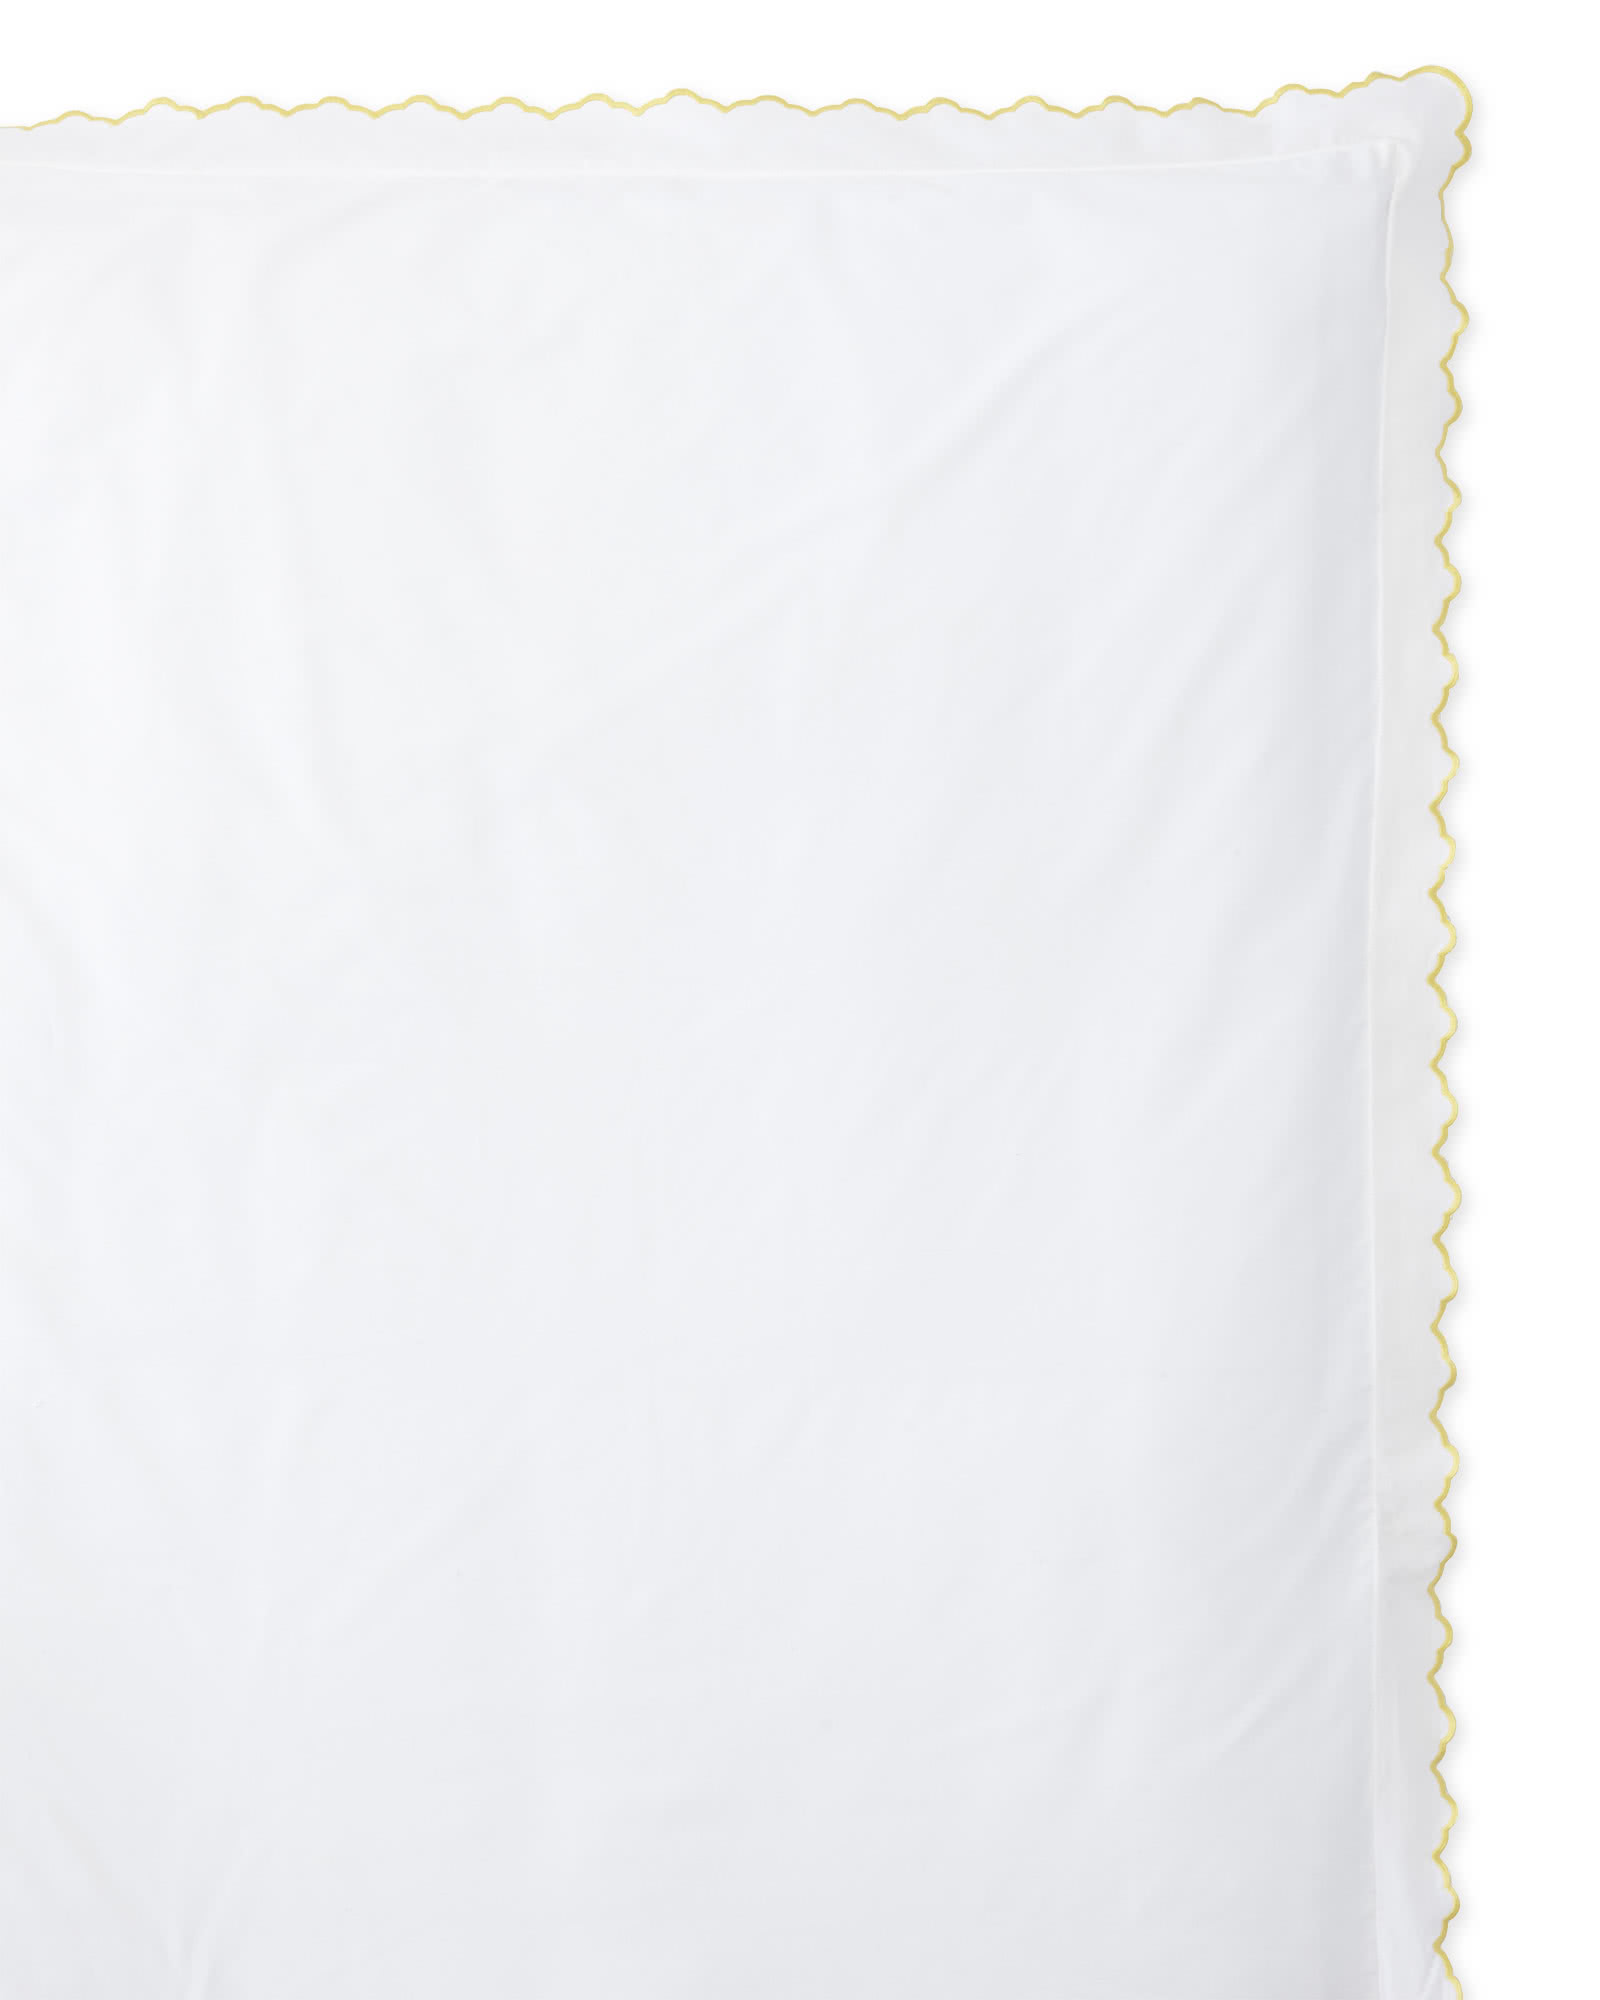 Scallop Embroidered Duvet Cover - Sunshine,